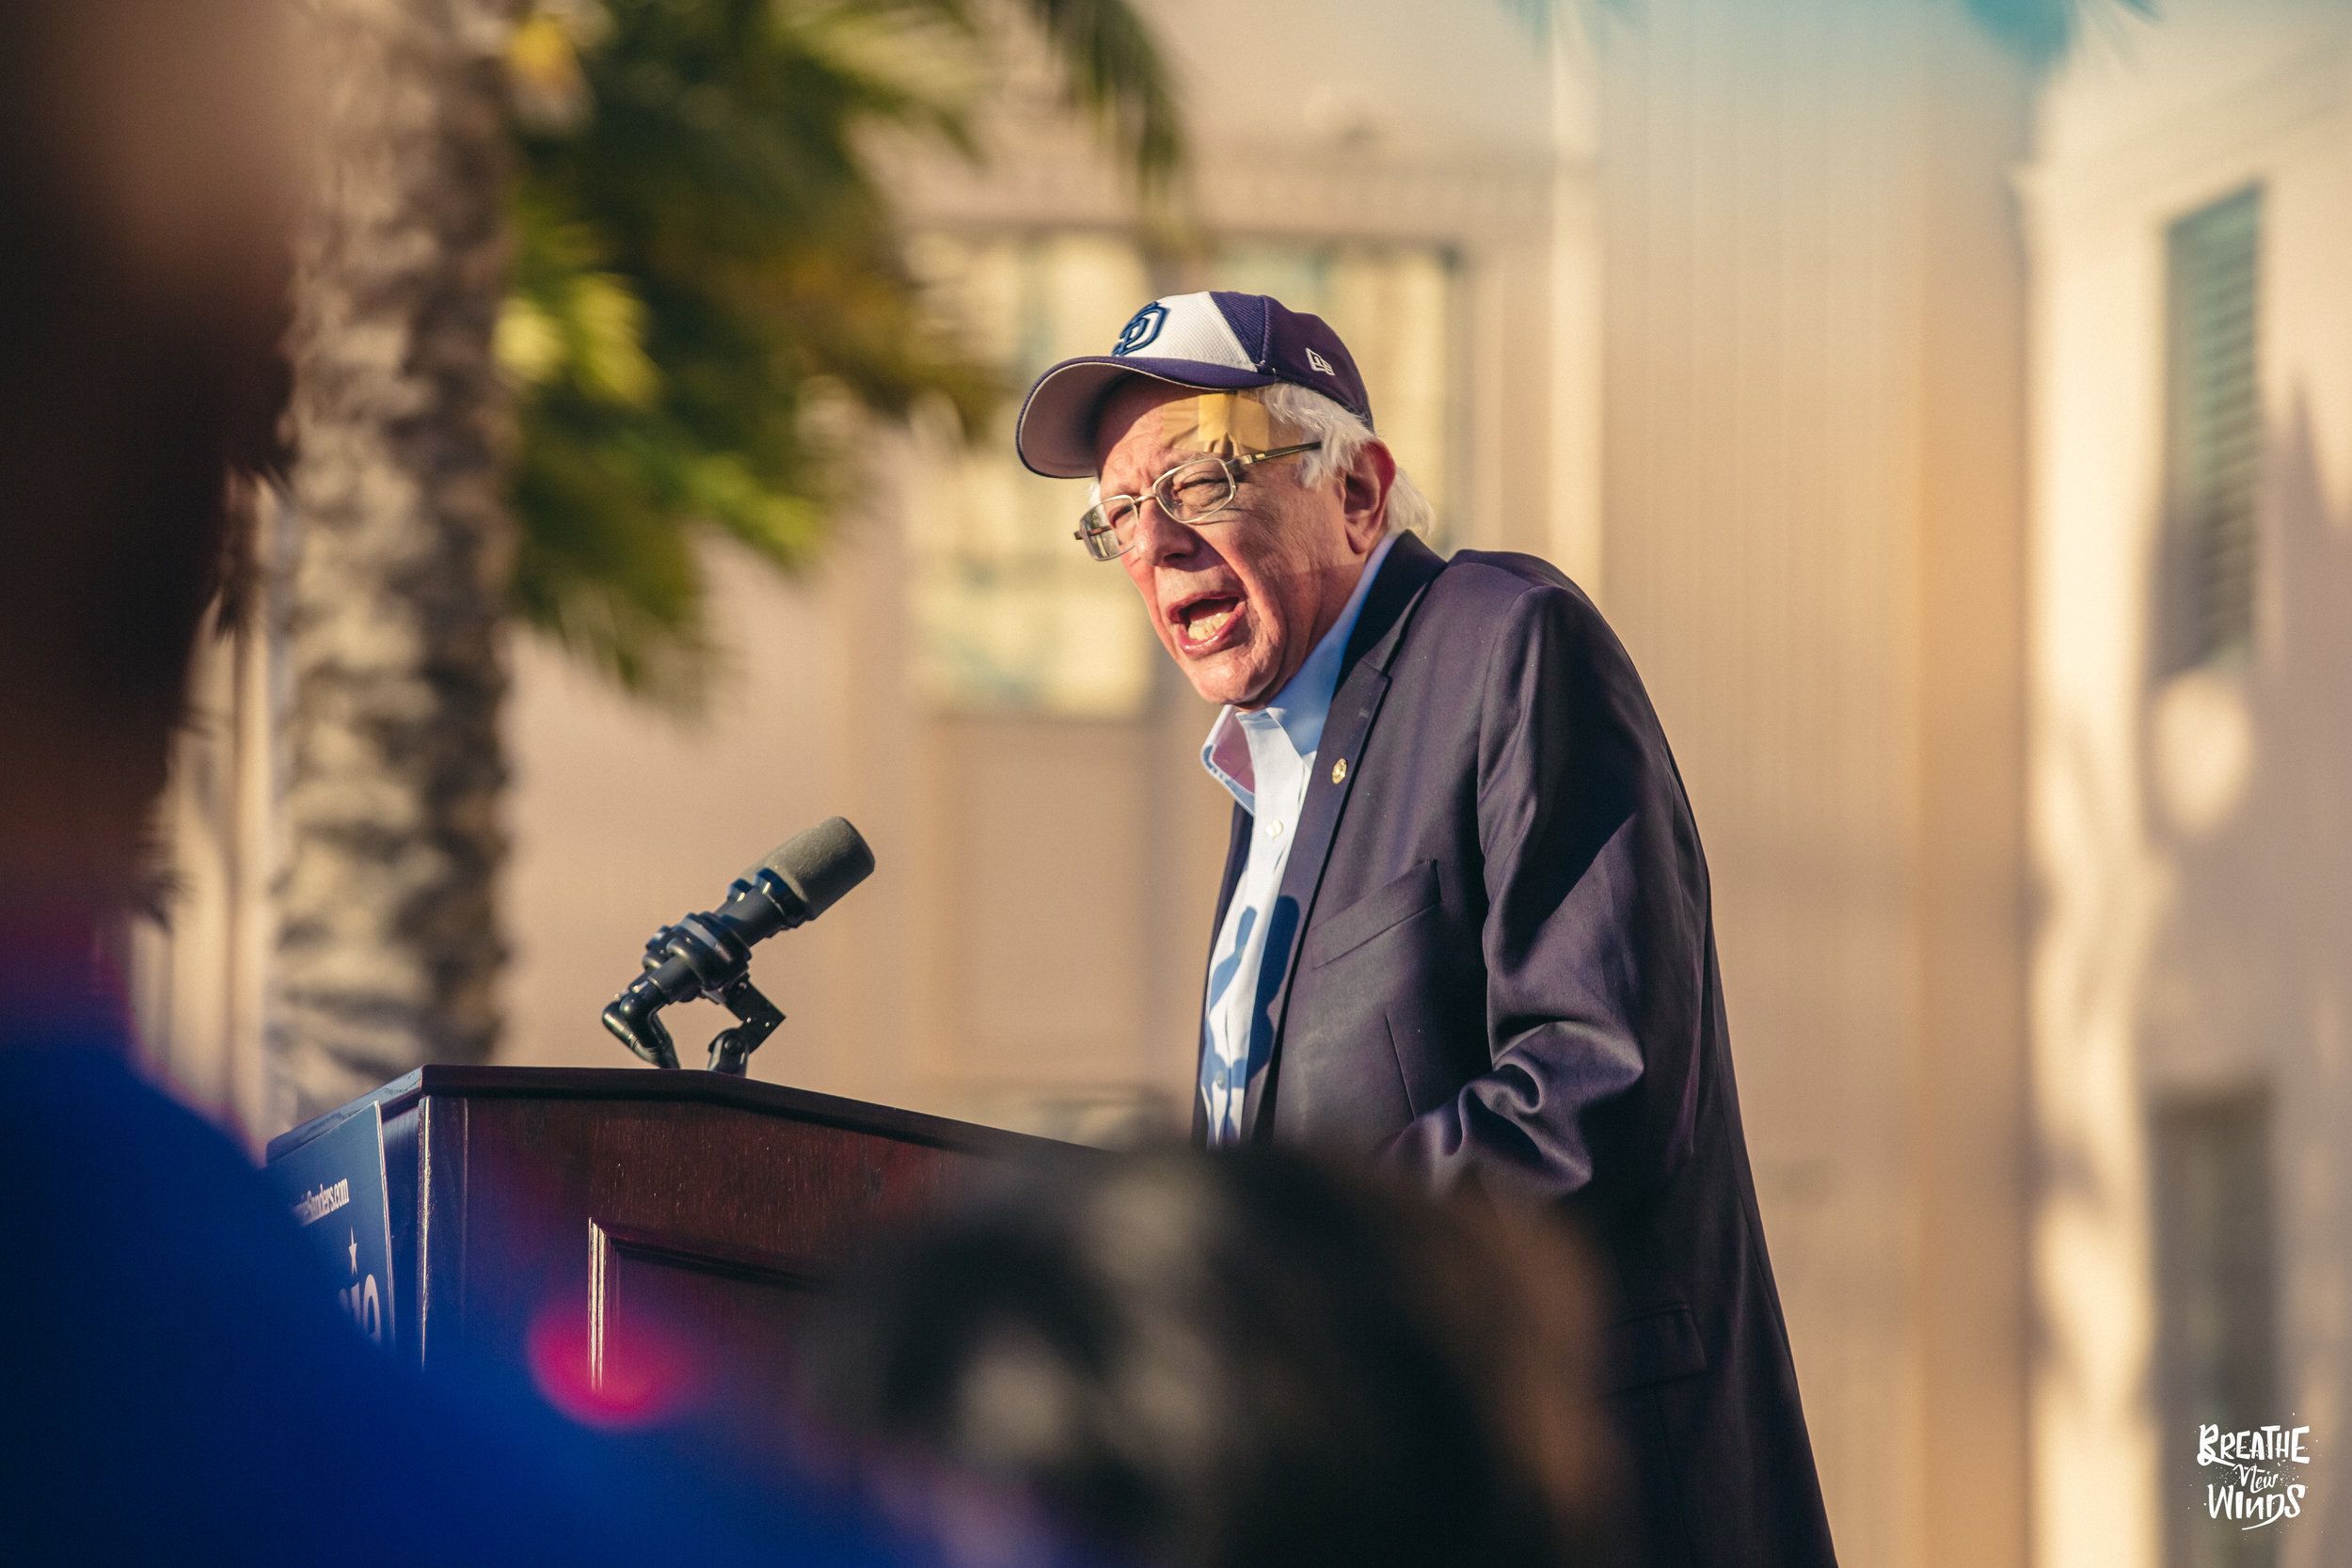 BernieInSD_22March2019-BernieAndFriends (16 of 78).jpg